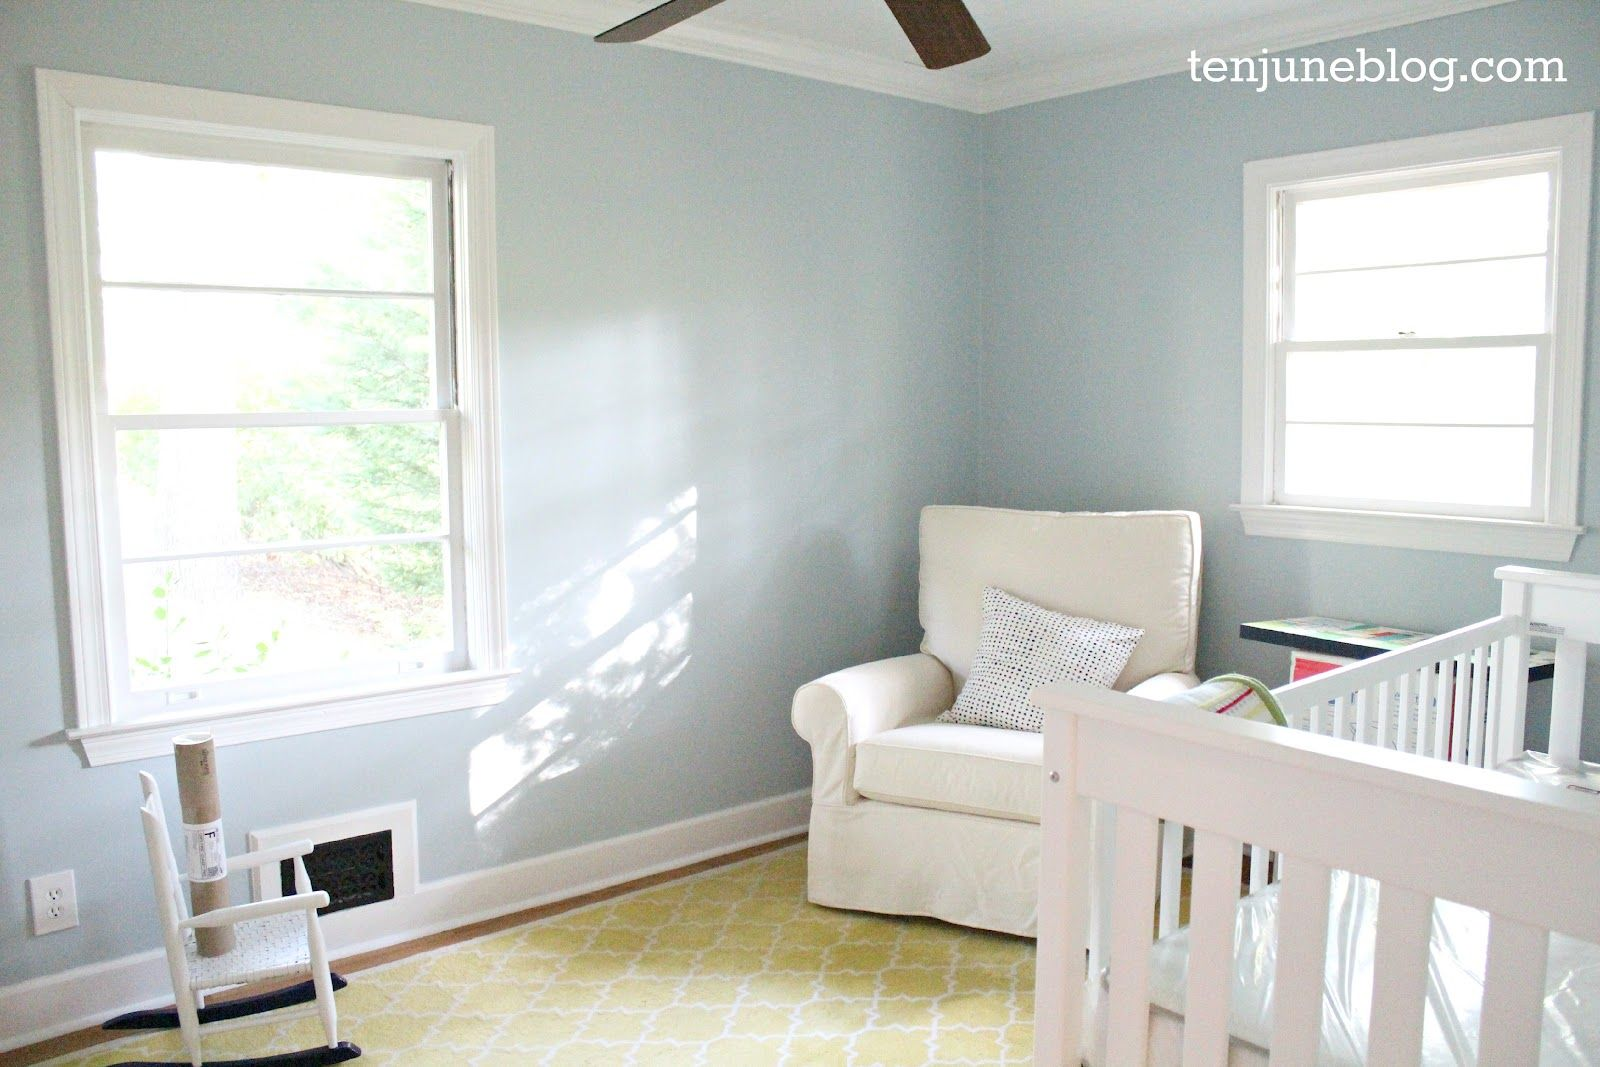 Sherwin williams sleepy blue jenn 39 s house pinterest bedrooms nursery and room Paint colors in rooms